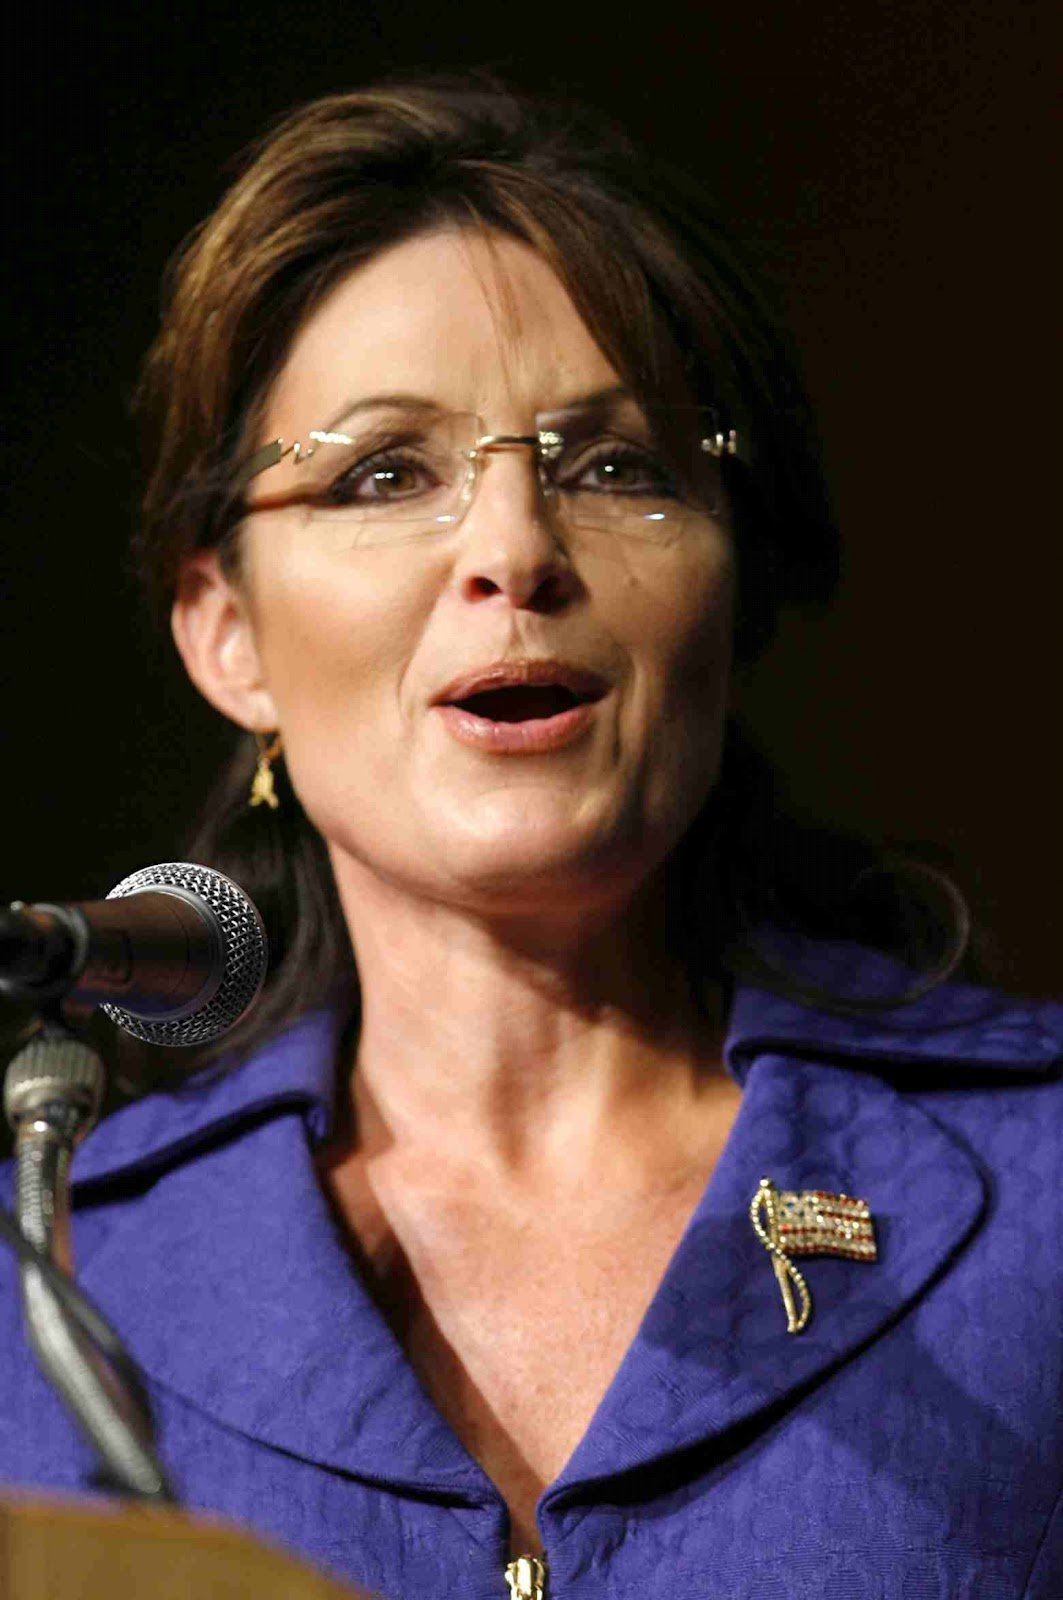 The Best Sarah Palin Hairstyle Sarah Palin Hairstyles Pictures